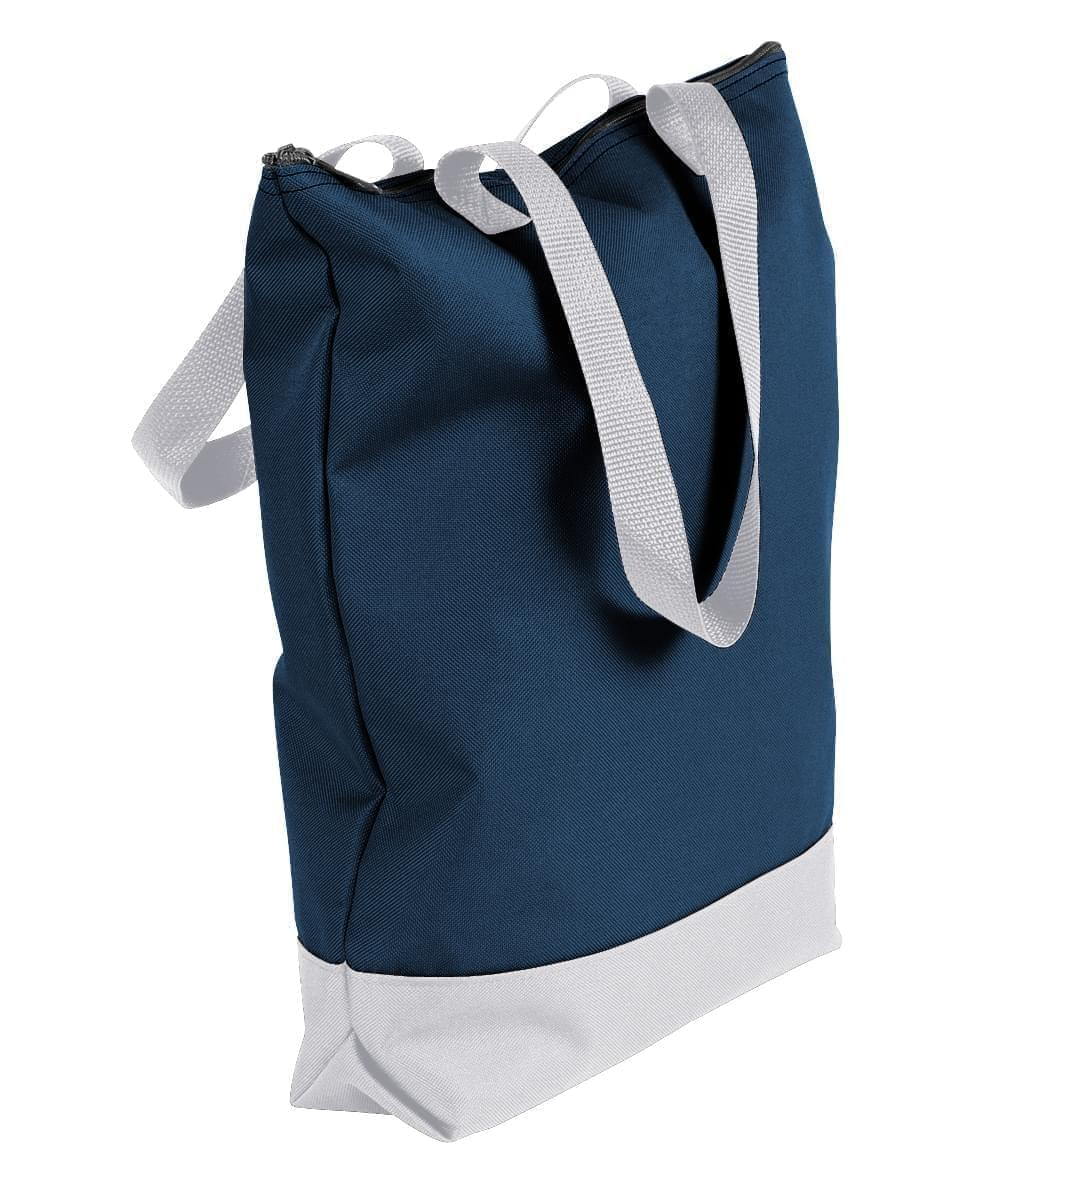 USA Made Canvas Portfolio Tote Bags, Navy-White, 1AAMX1UAC4